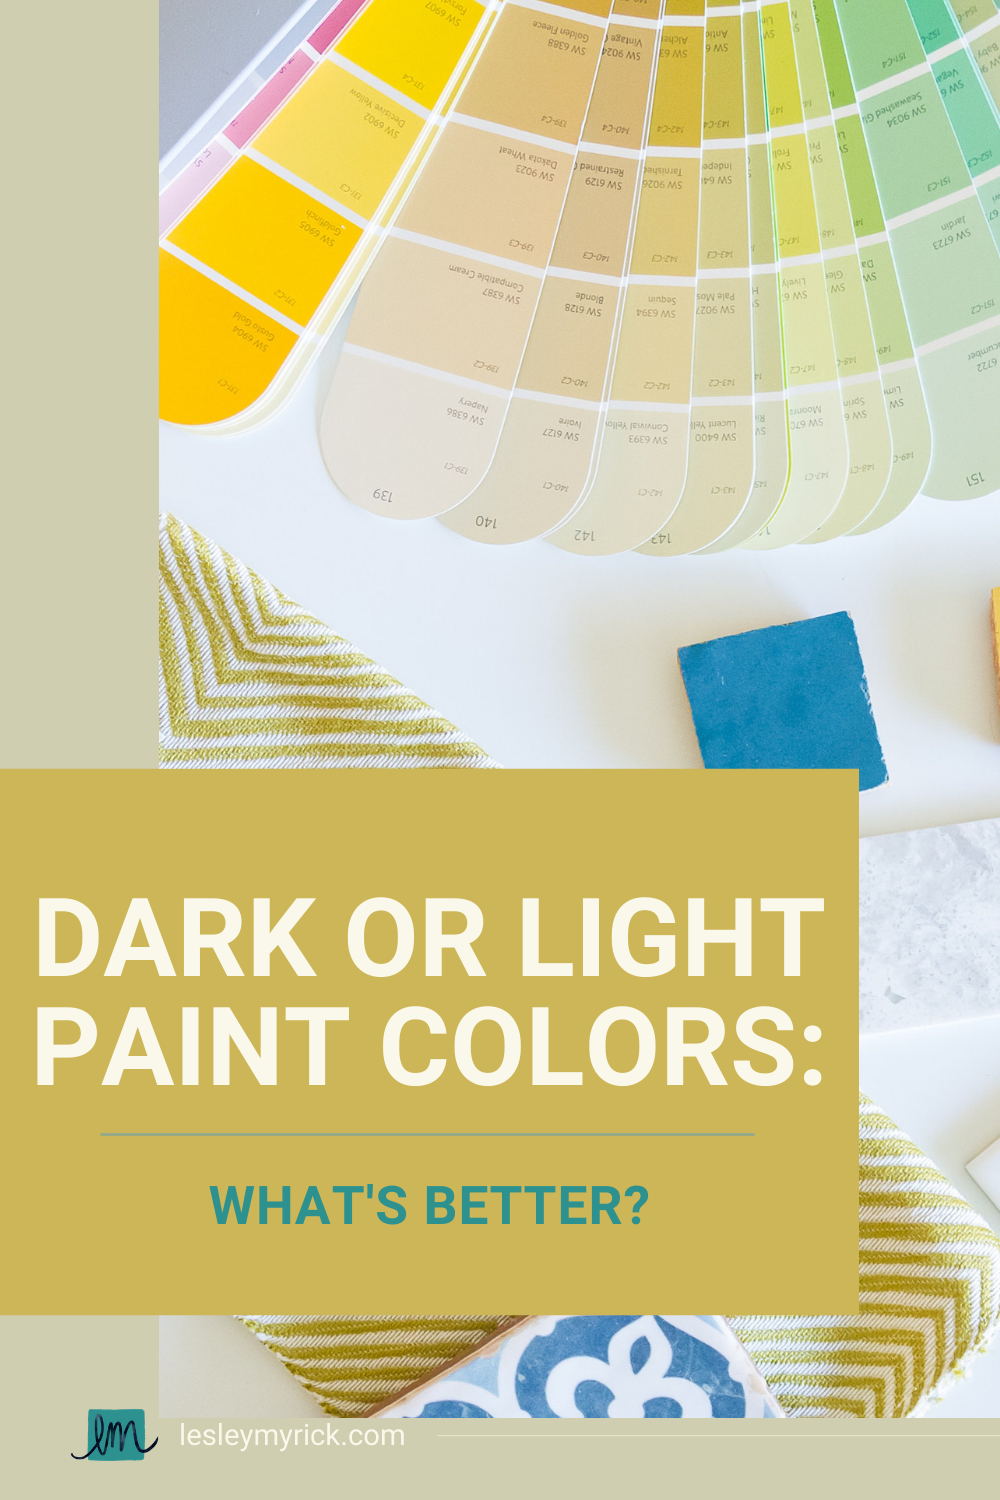 What's better - dark or light paint colors? We all know that picking paint colors is tricky. What a paint sample looks like in the store or on a swatch can be completely different than what it looks like in your room. Sometimes light paint colors can look disappointingly dull and drab on the walls, and dark colors can look surprisingly rich and welcoming. But before we can determine whether dark or light paint colors are better, we've gotta bust a couple of common paint color myths.